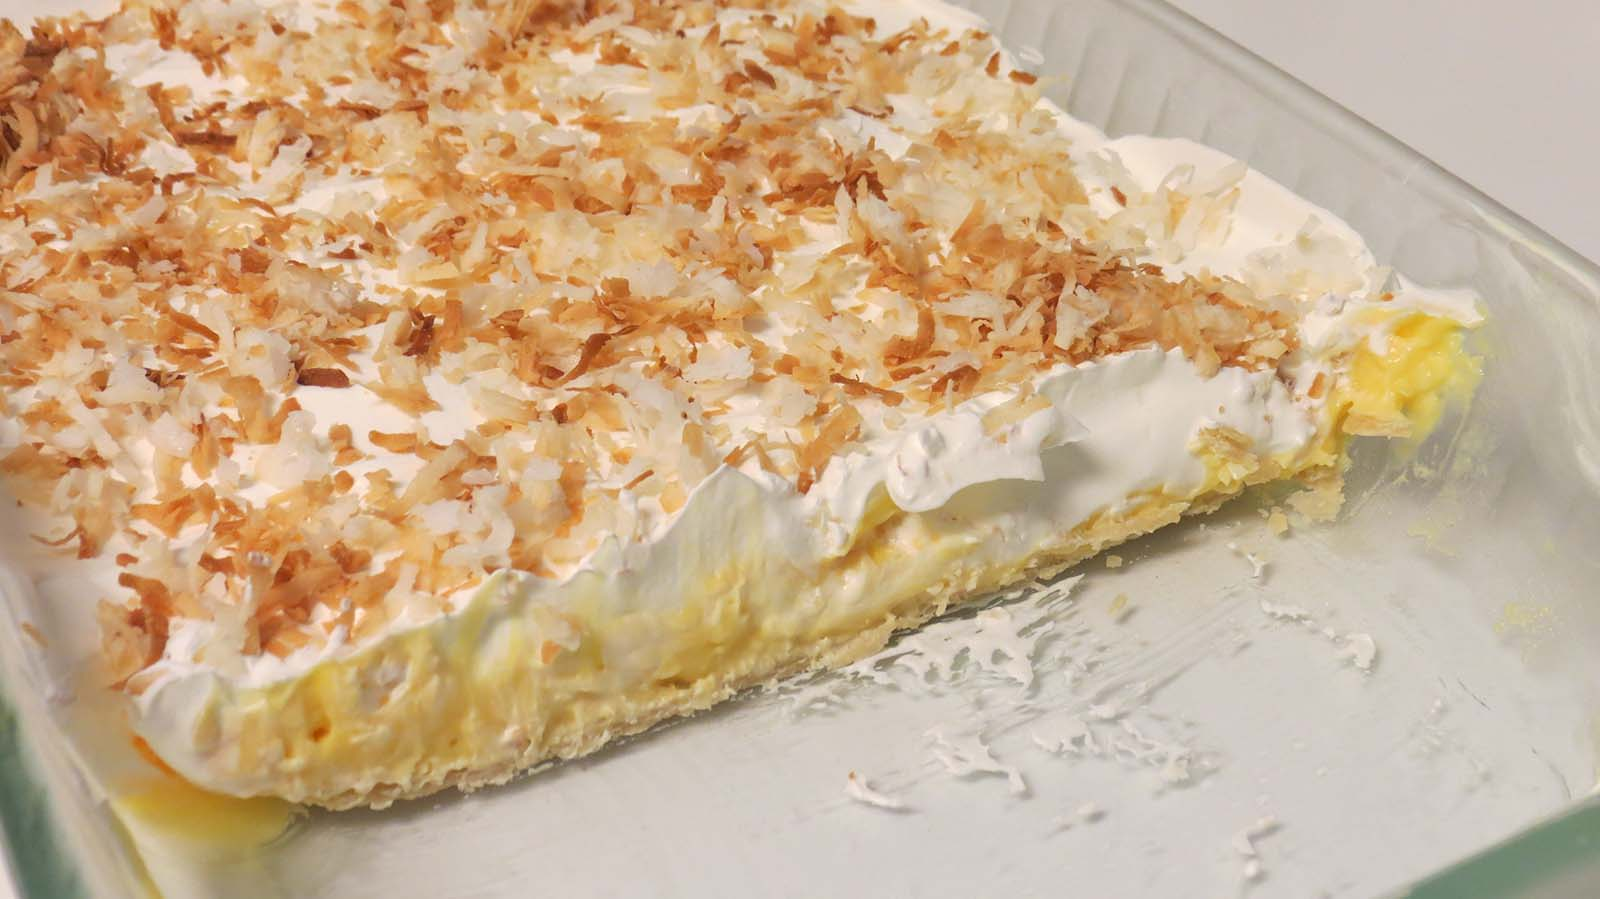 All layers of Coconut Cream Bars by Sarah Franzen